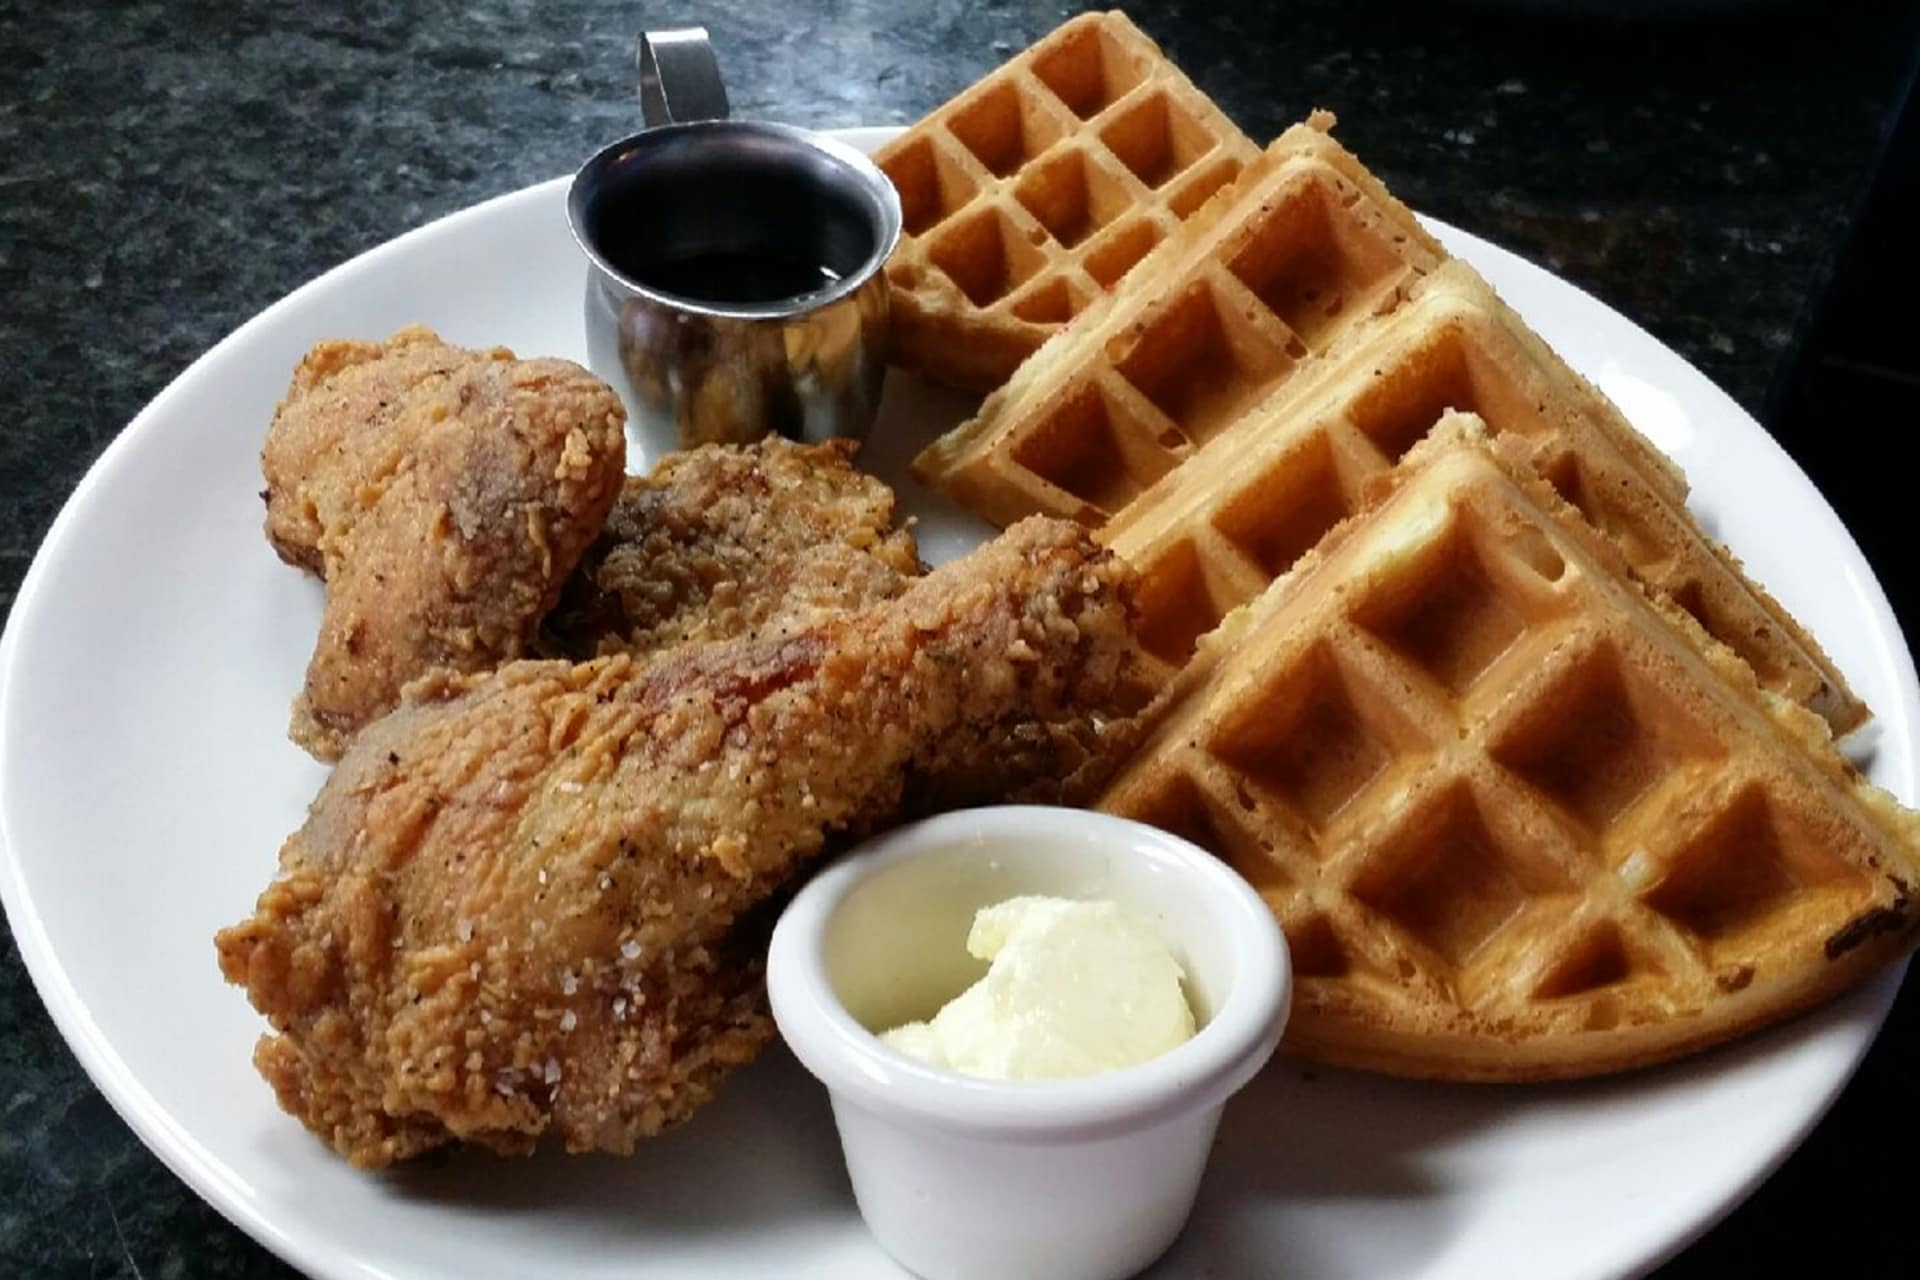 Buttermilk Fried Chicken and Belgian Waffle